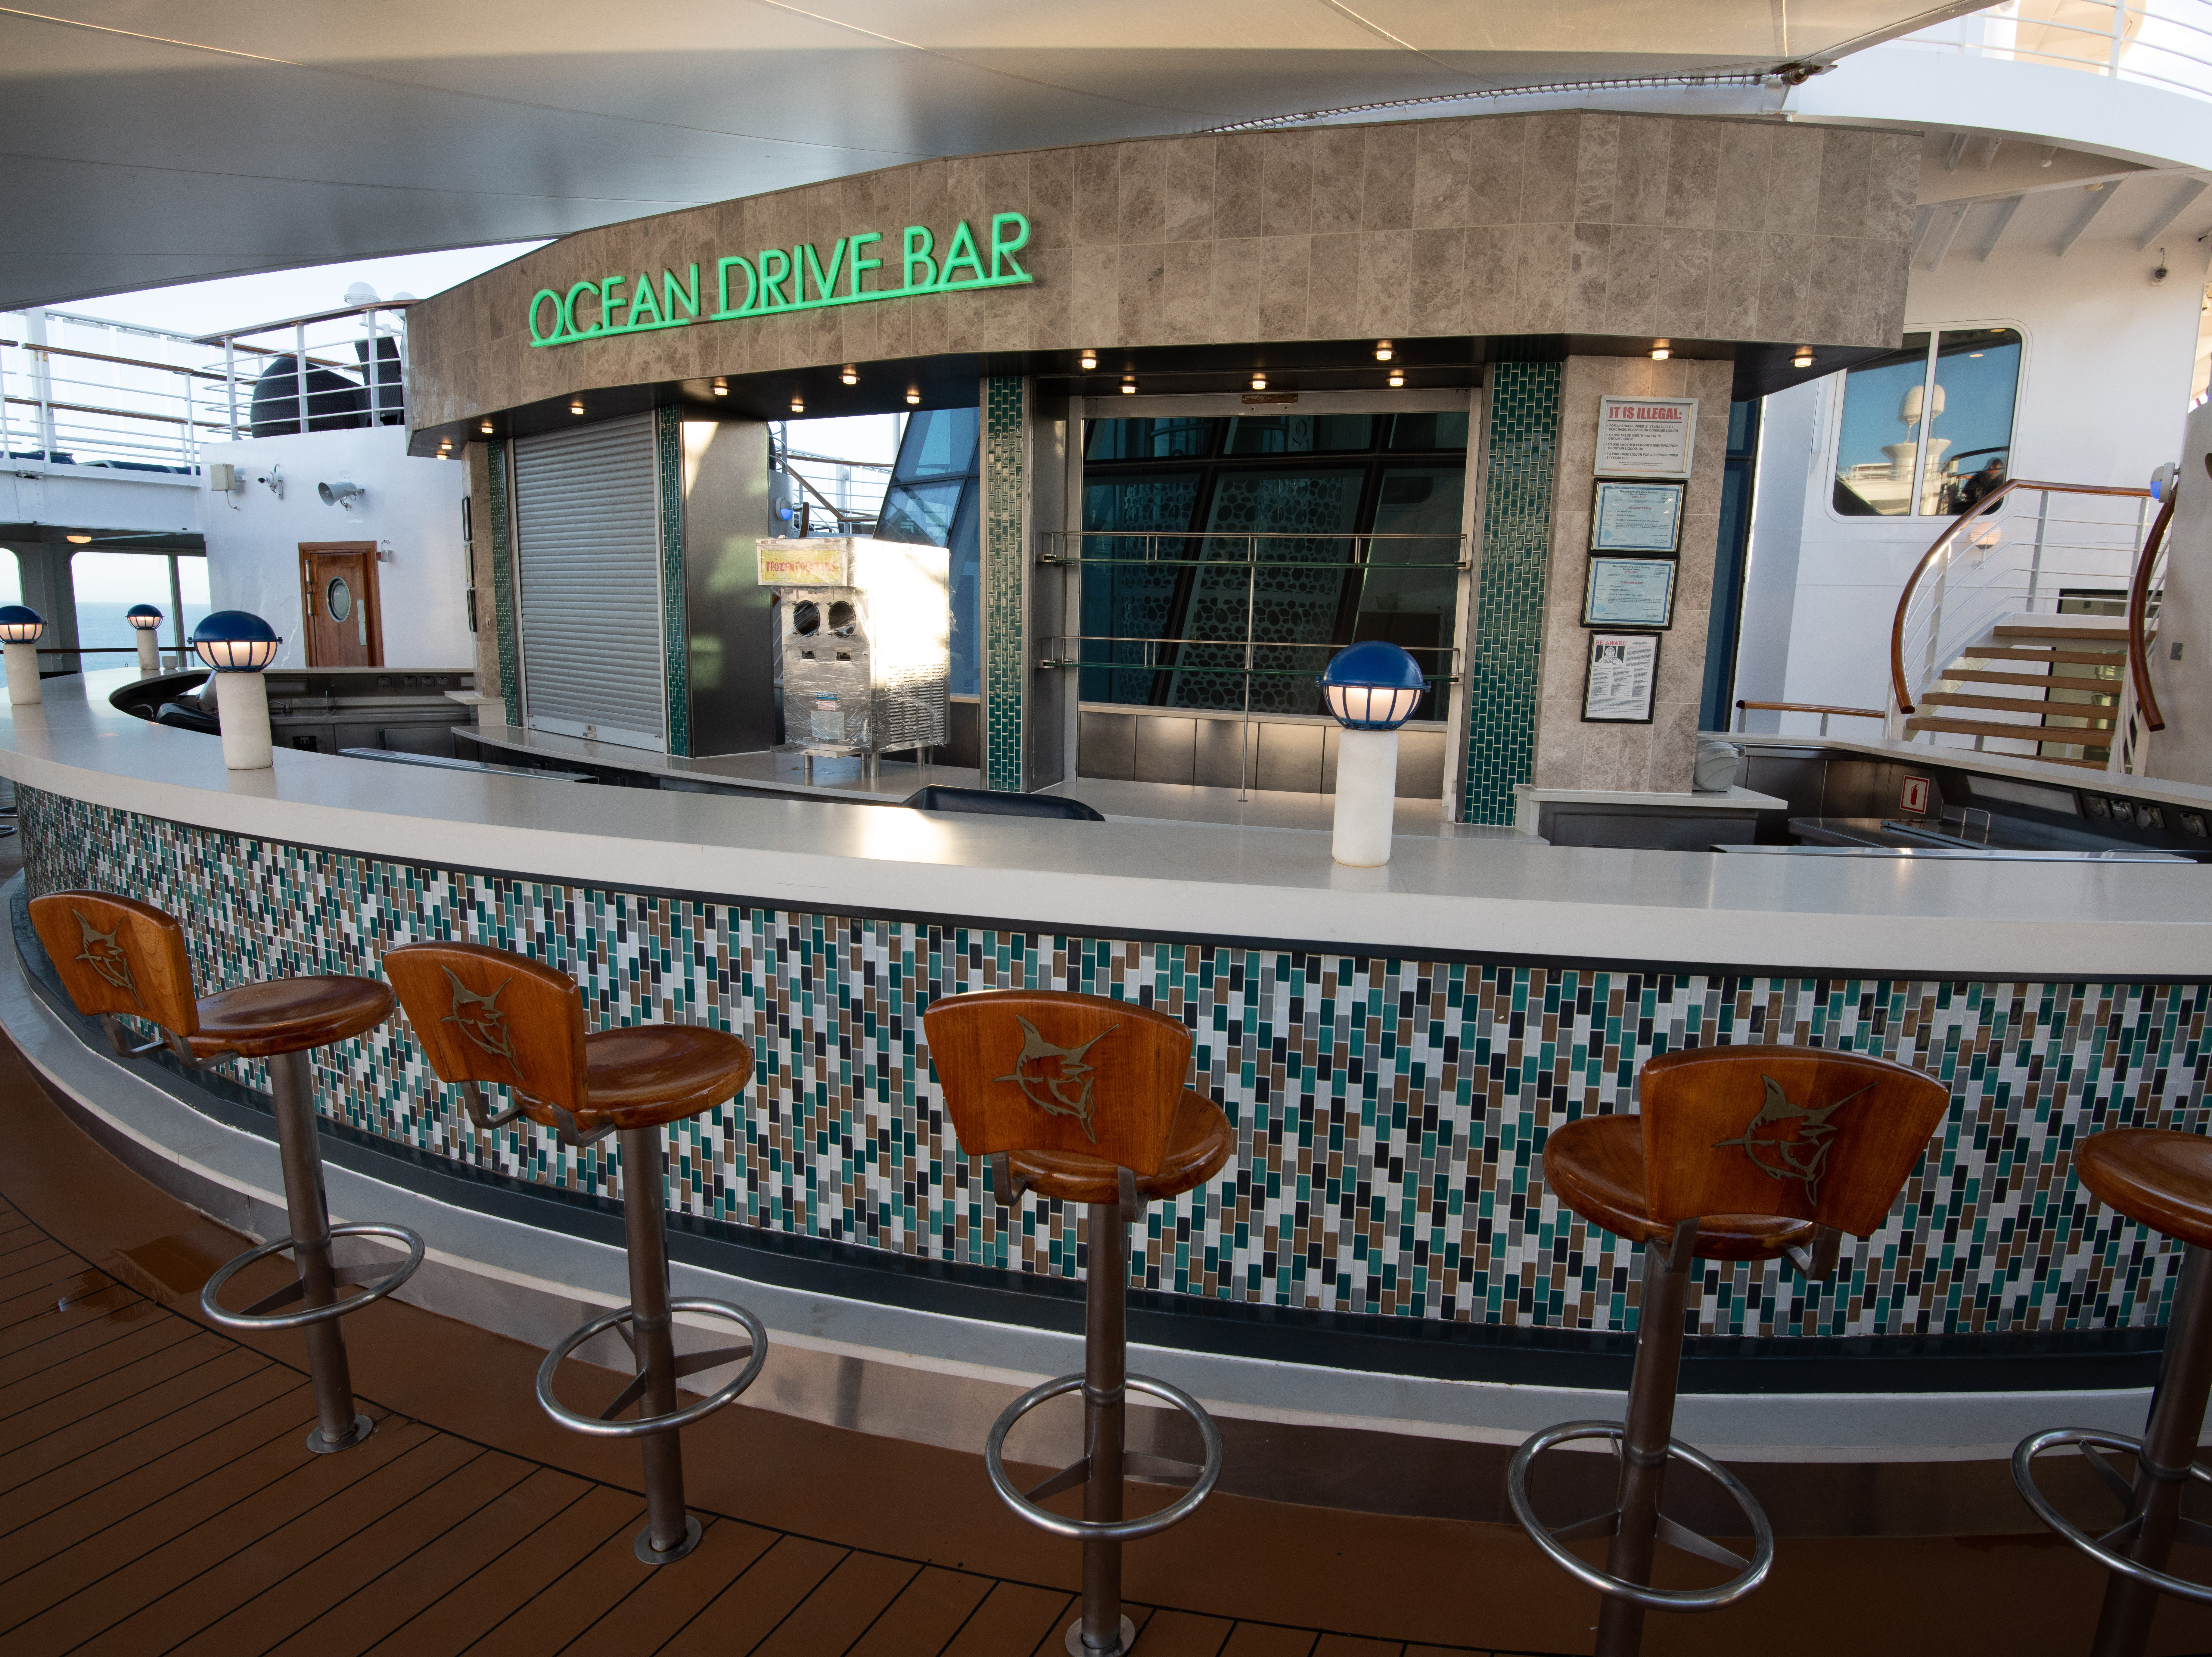 Pride of America offers ten bars and lounges. Among them is the outdoor Ocean Drive Bar, which is just steps away from the South Beach Pool on Deck 11.